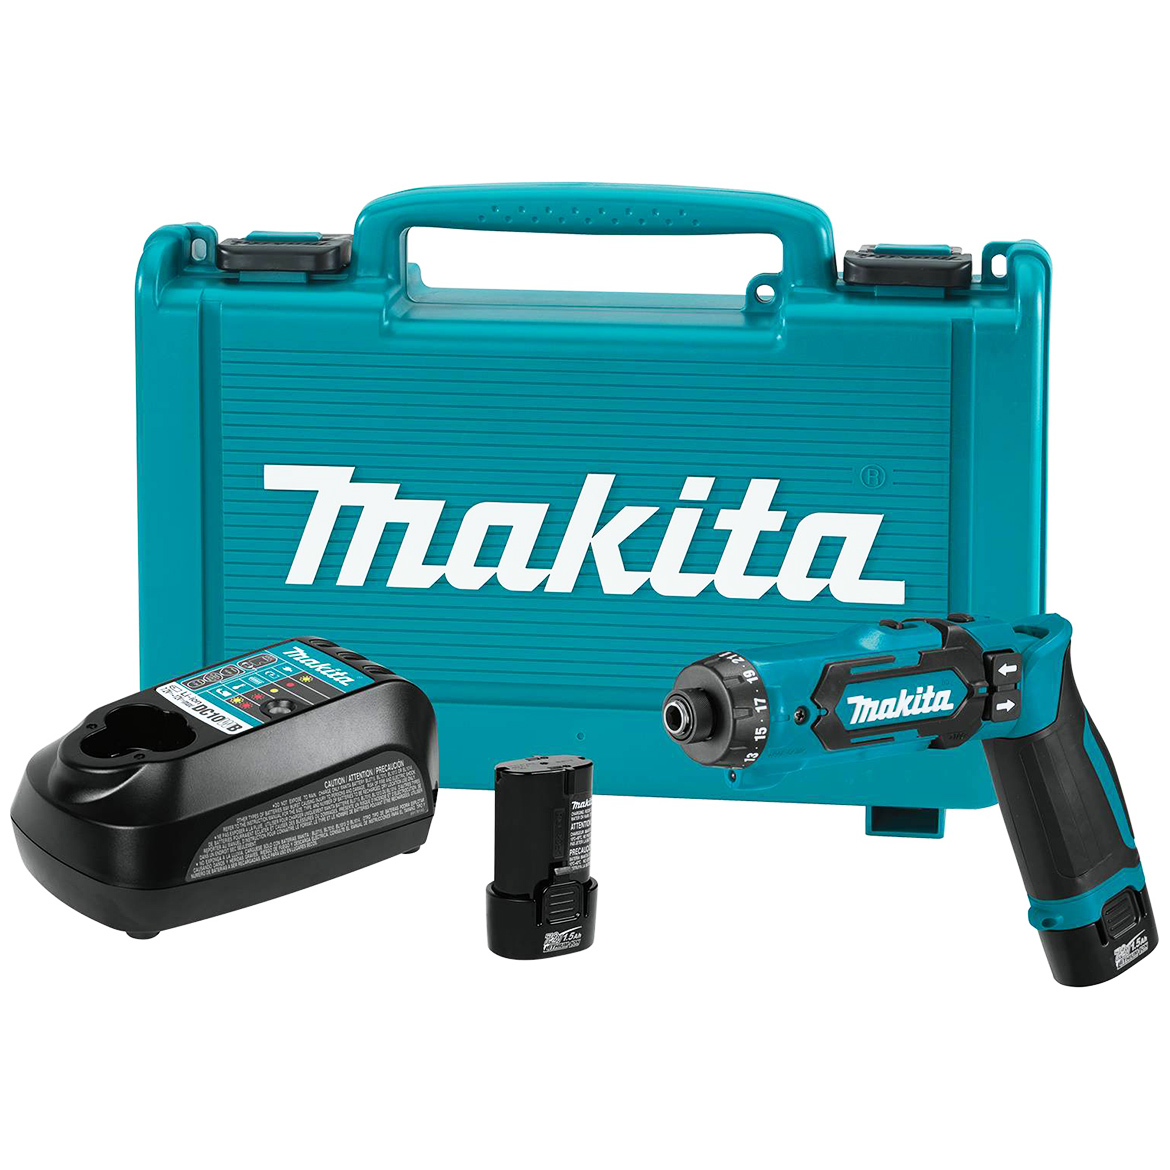 Details about Makita DF012DSE 7 2-Volt 1/4-Inch Auto-Stop Clutch Cordless  Hex Driver-Drill Kit